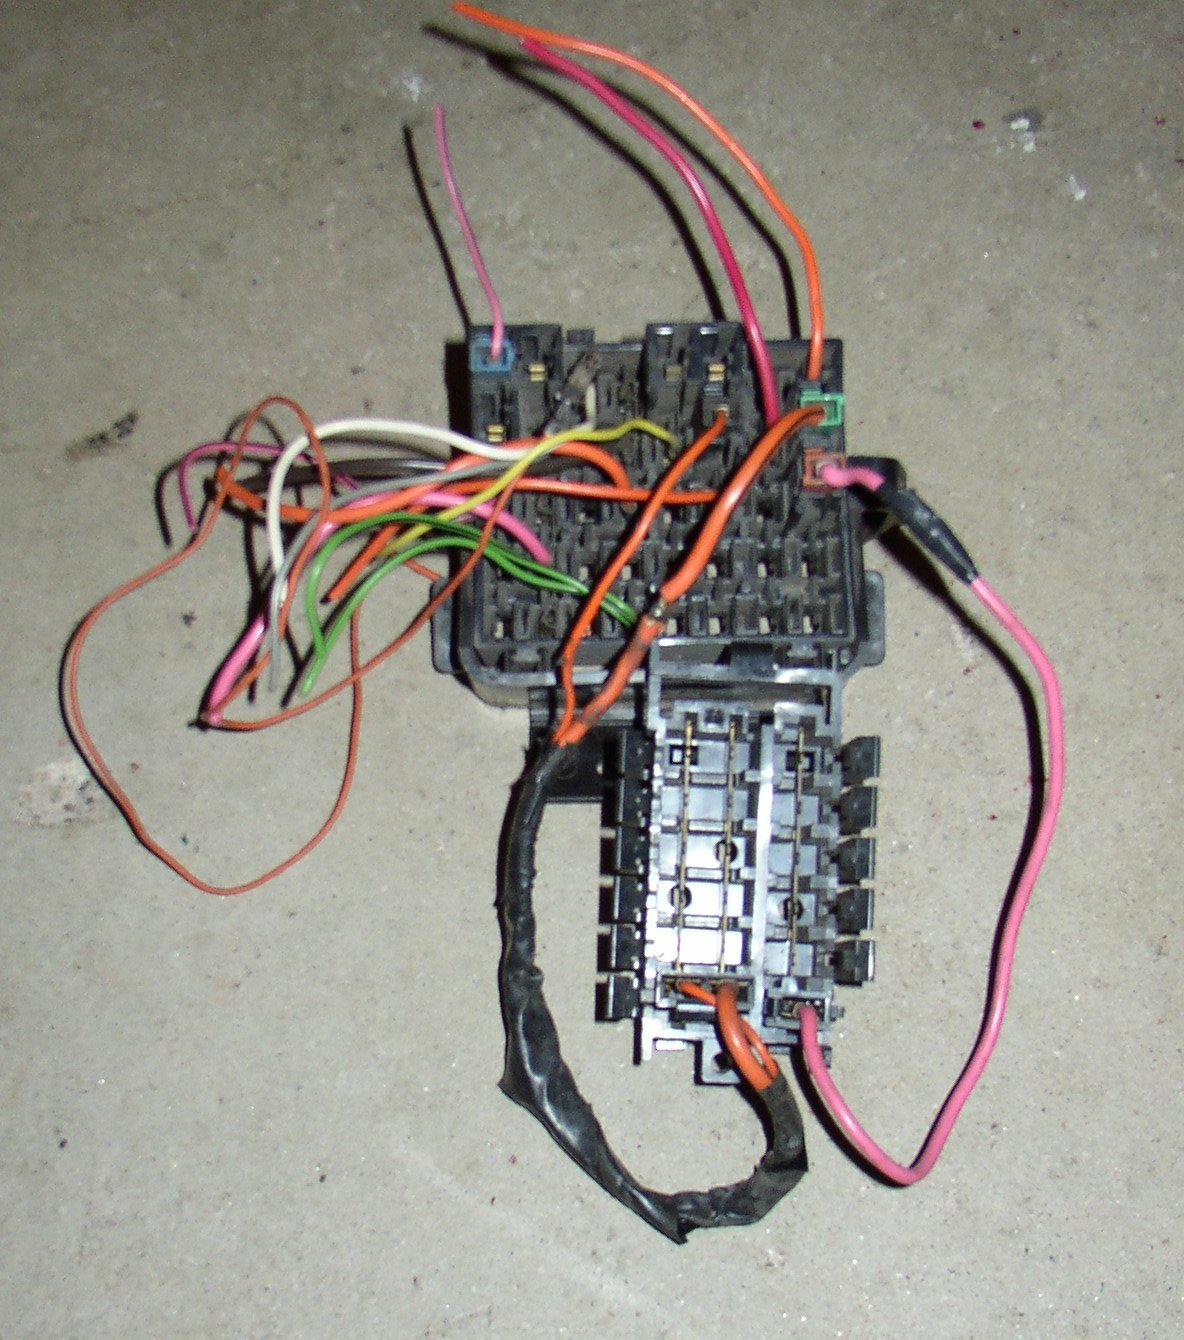 hight resolution of the plugs you want to obtain are the ones that plug into the junction block not the fuse box the pink wire connectors are smaller than the orange wire